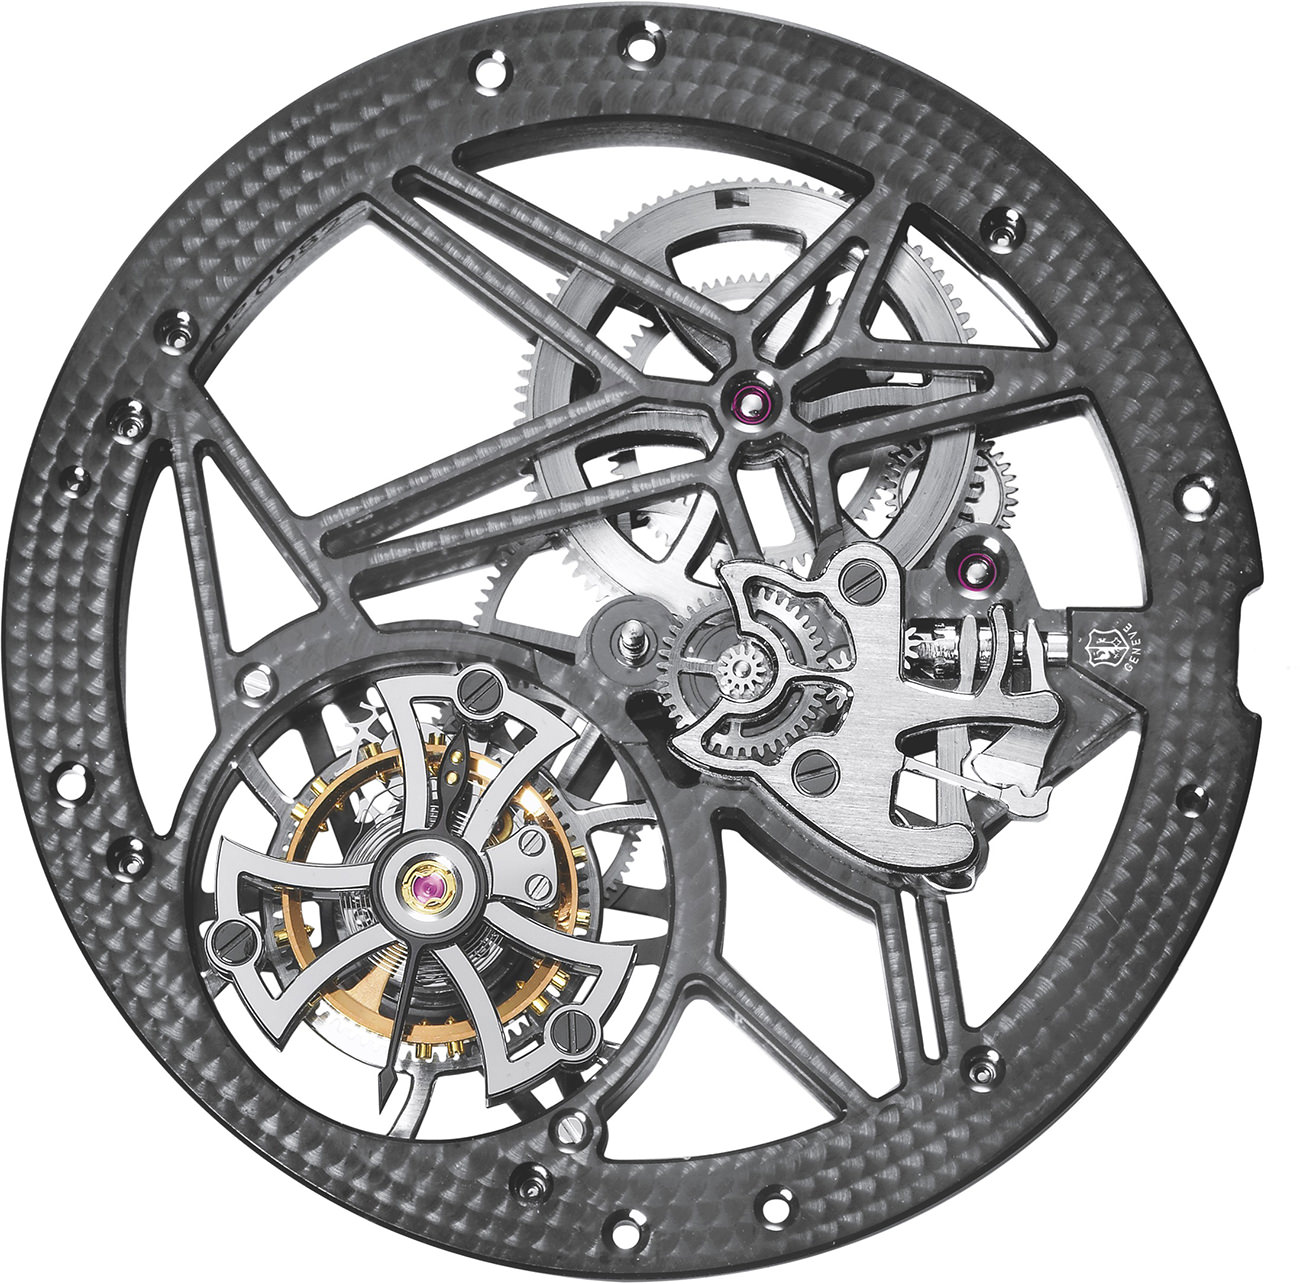 Roger-Dubuis-Excalibur-Spider-Skeleton-Flying-Tourbillon-11